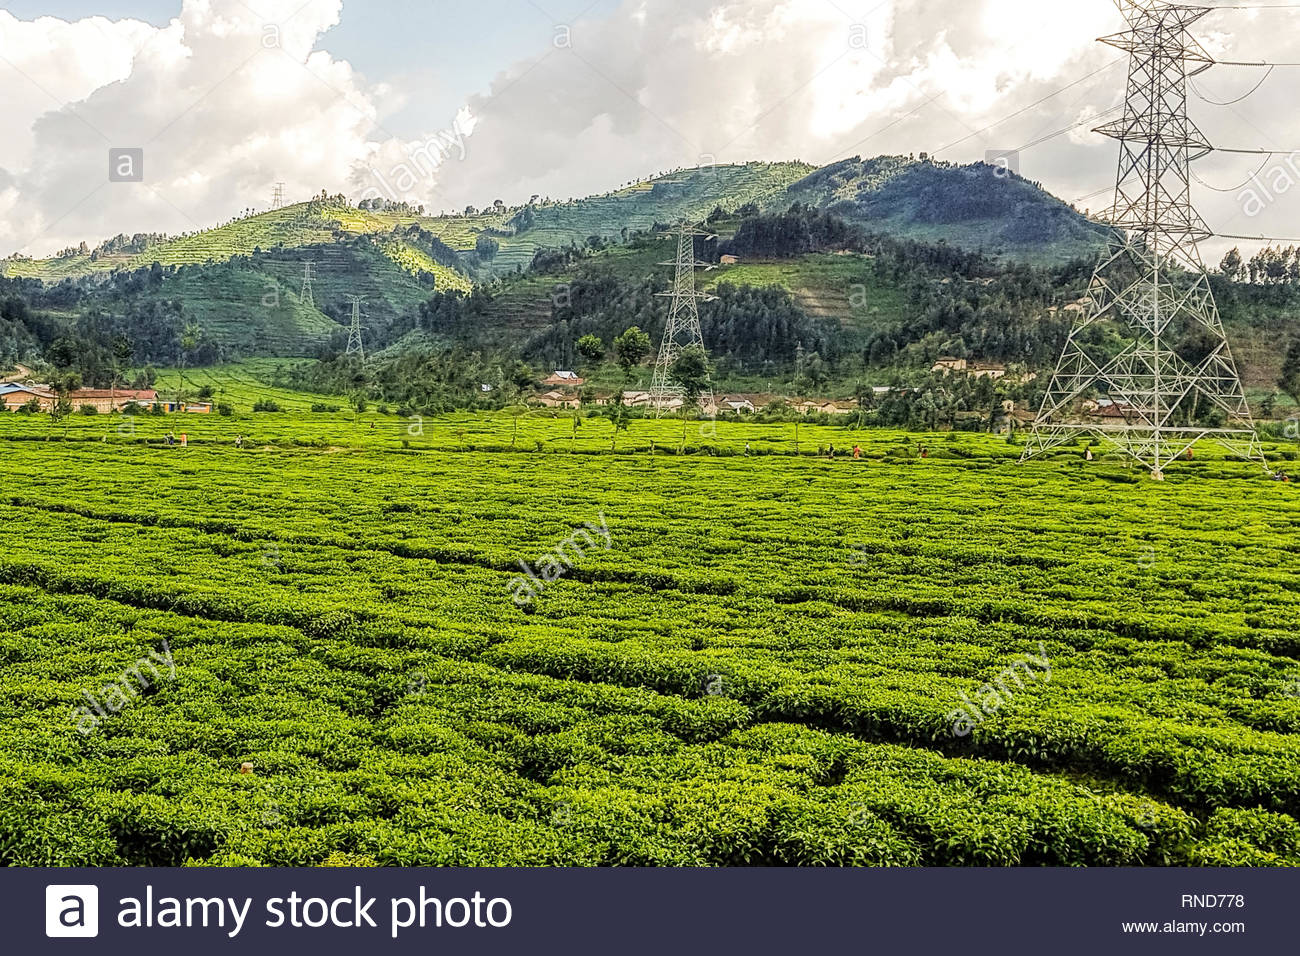 Farms on Hillsides in Rwanda, East Africa - Green Fields with Crops Stock Photo